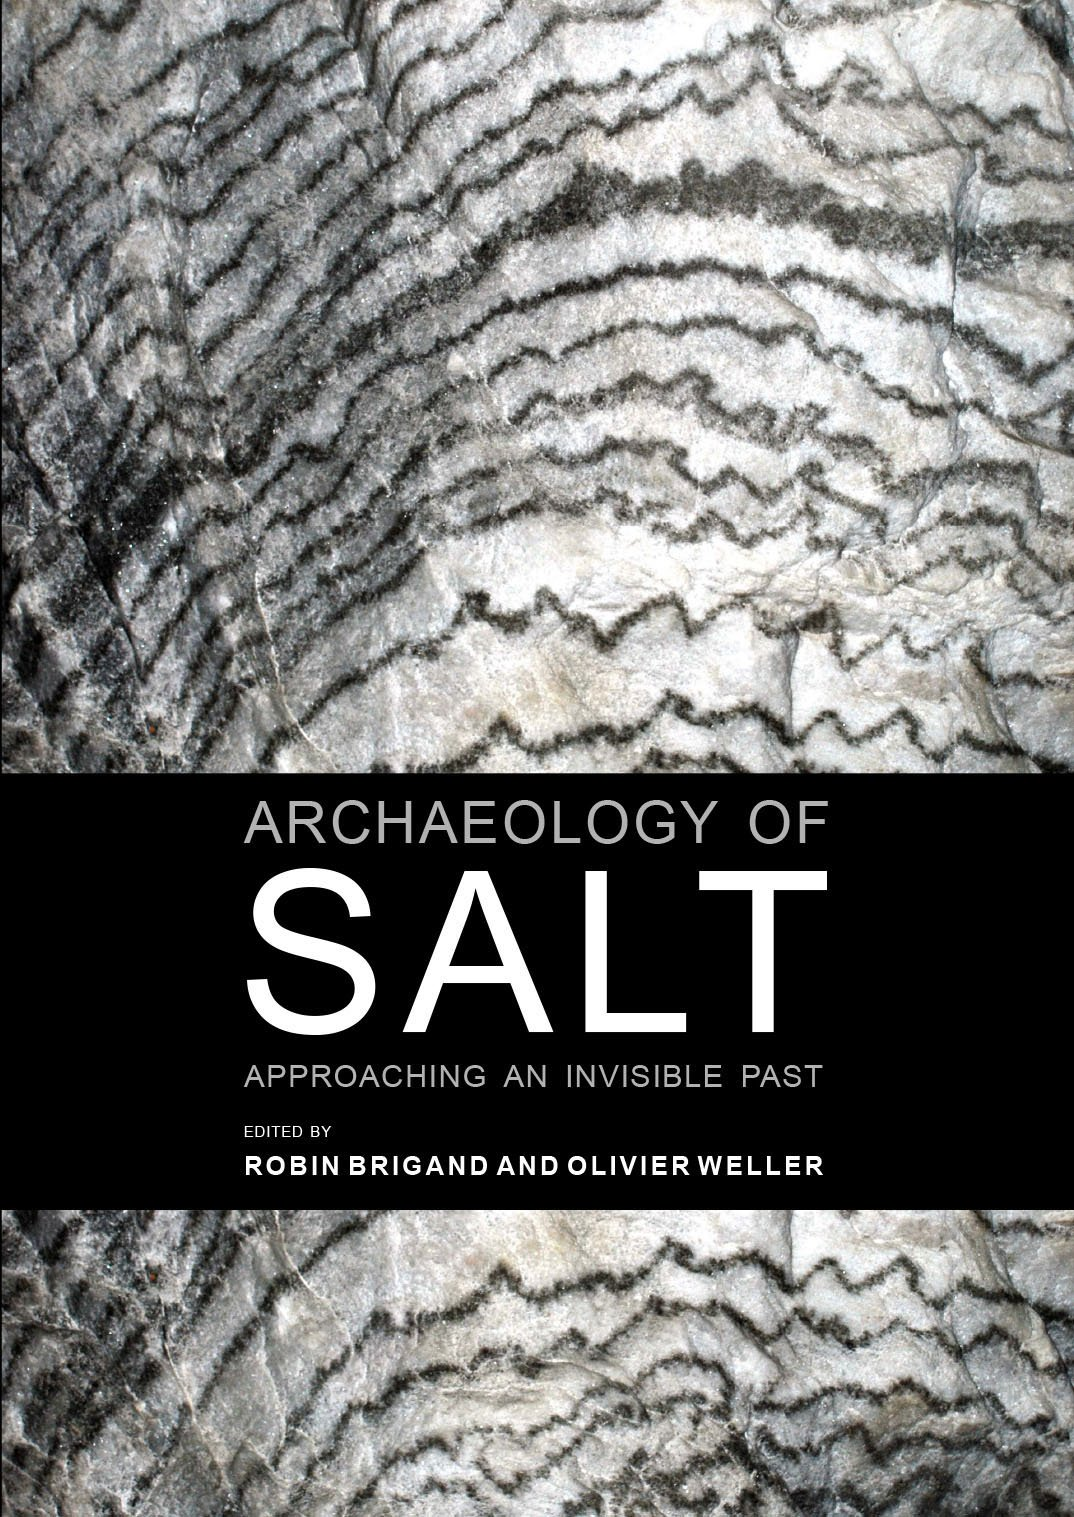 Archaeology of salt [electronic resource] : approaching an invisible past